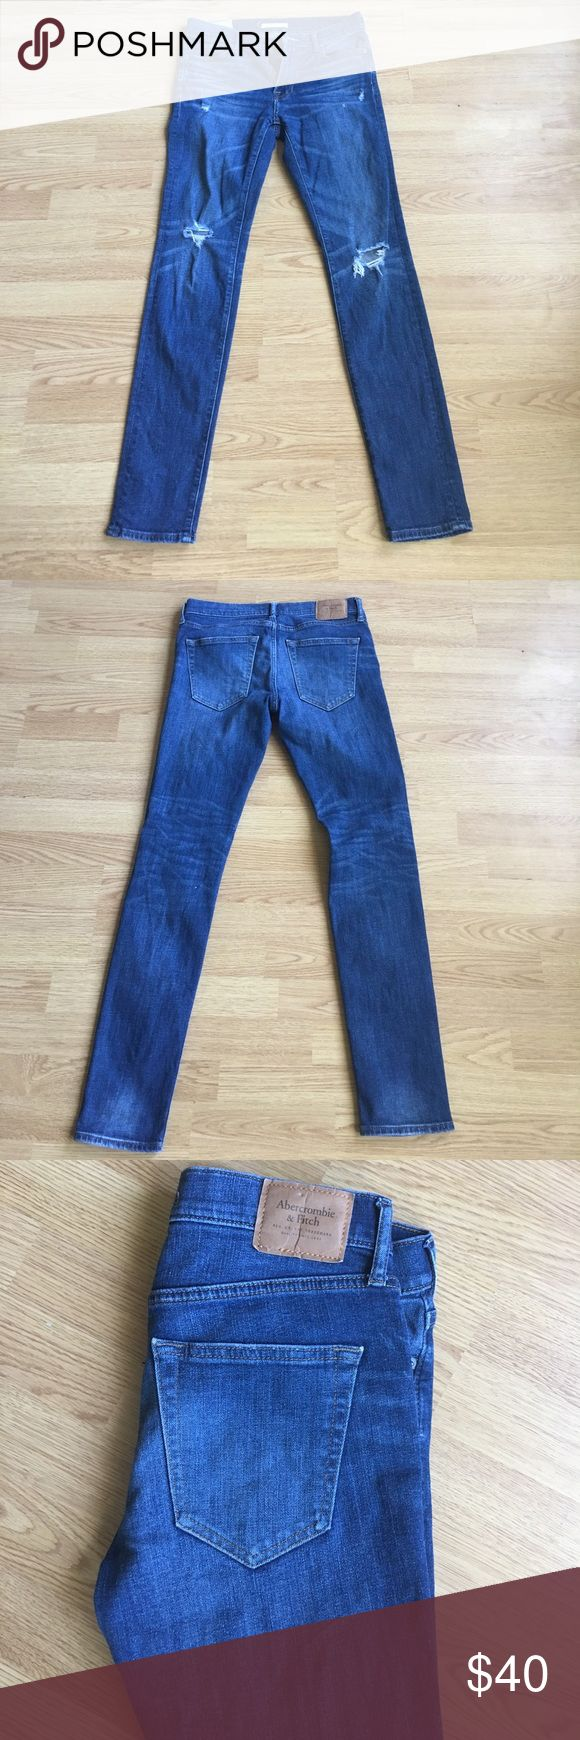 Abercrombie and Fitch jeans Dark wash Abercrombie and Fitch ripped jeans (29x32 supper skinny) worn a few times but still look brand new Abercrombie & Fitch Jeans Skinny